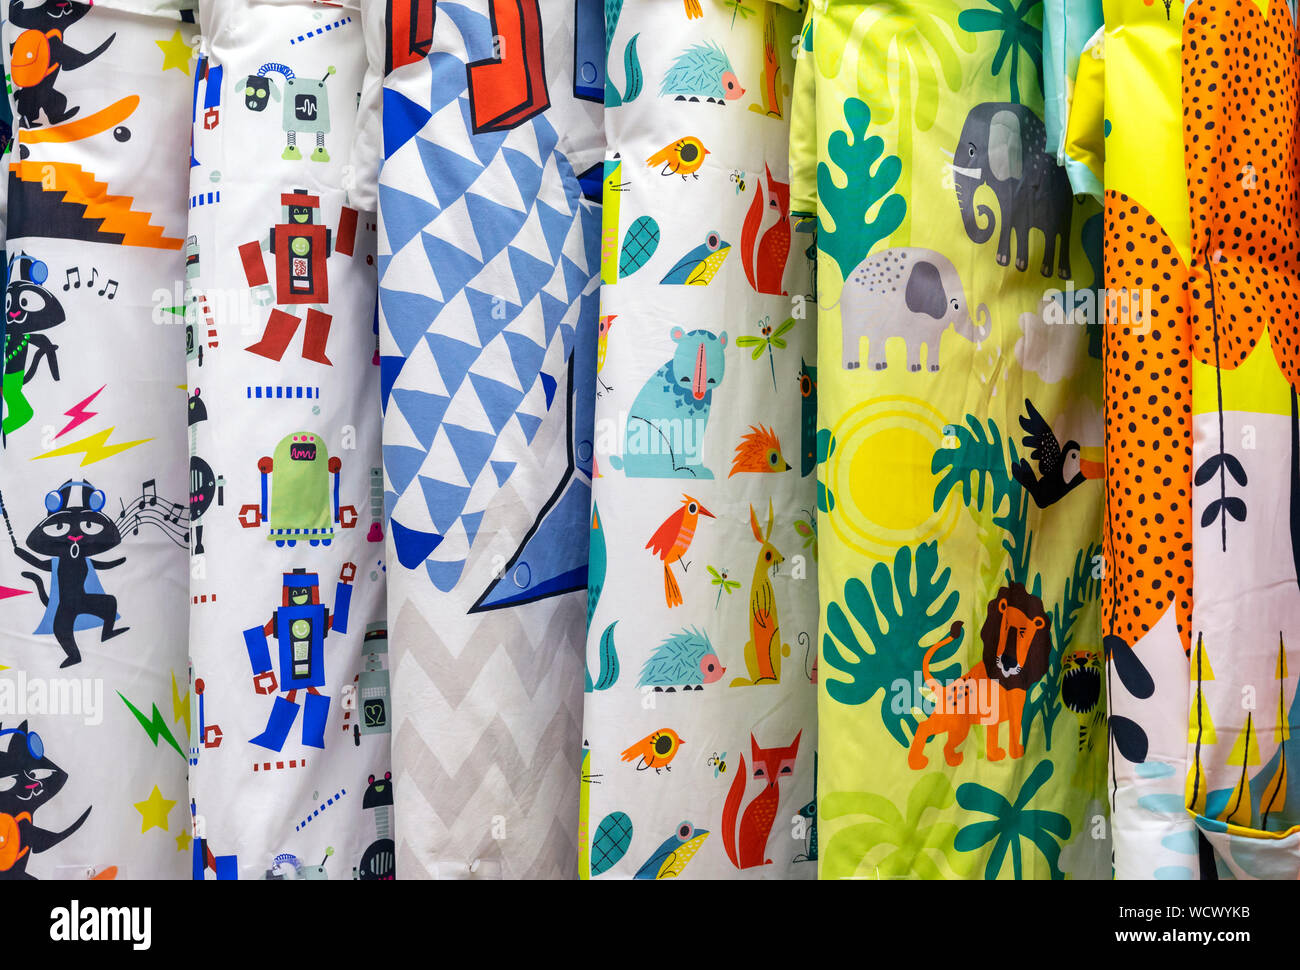 Blankets With Colored Duvet Covers In A Shop Window Stock Photo Alamy